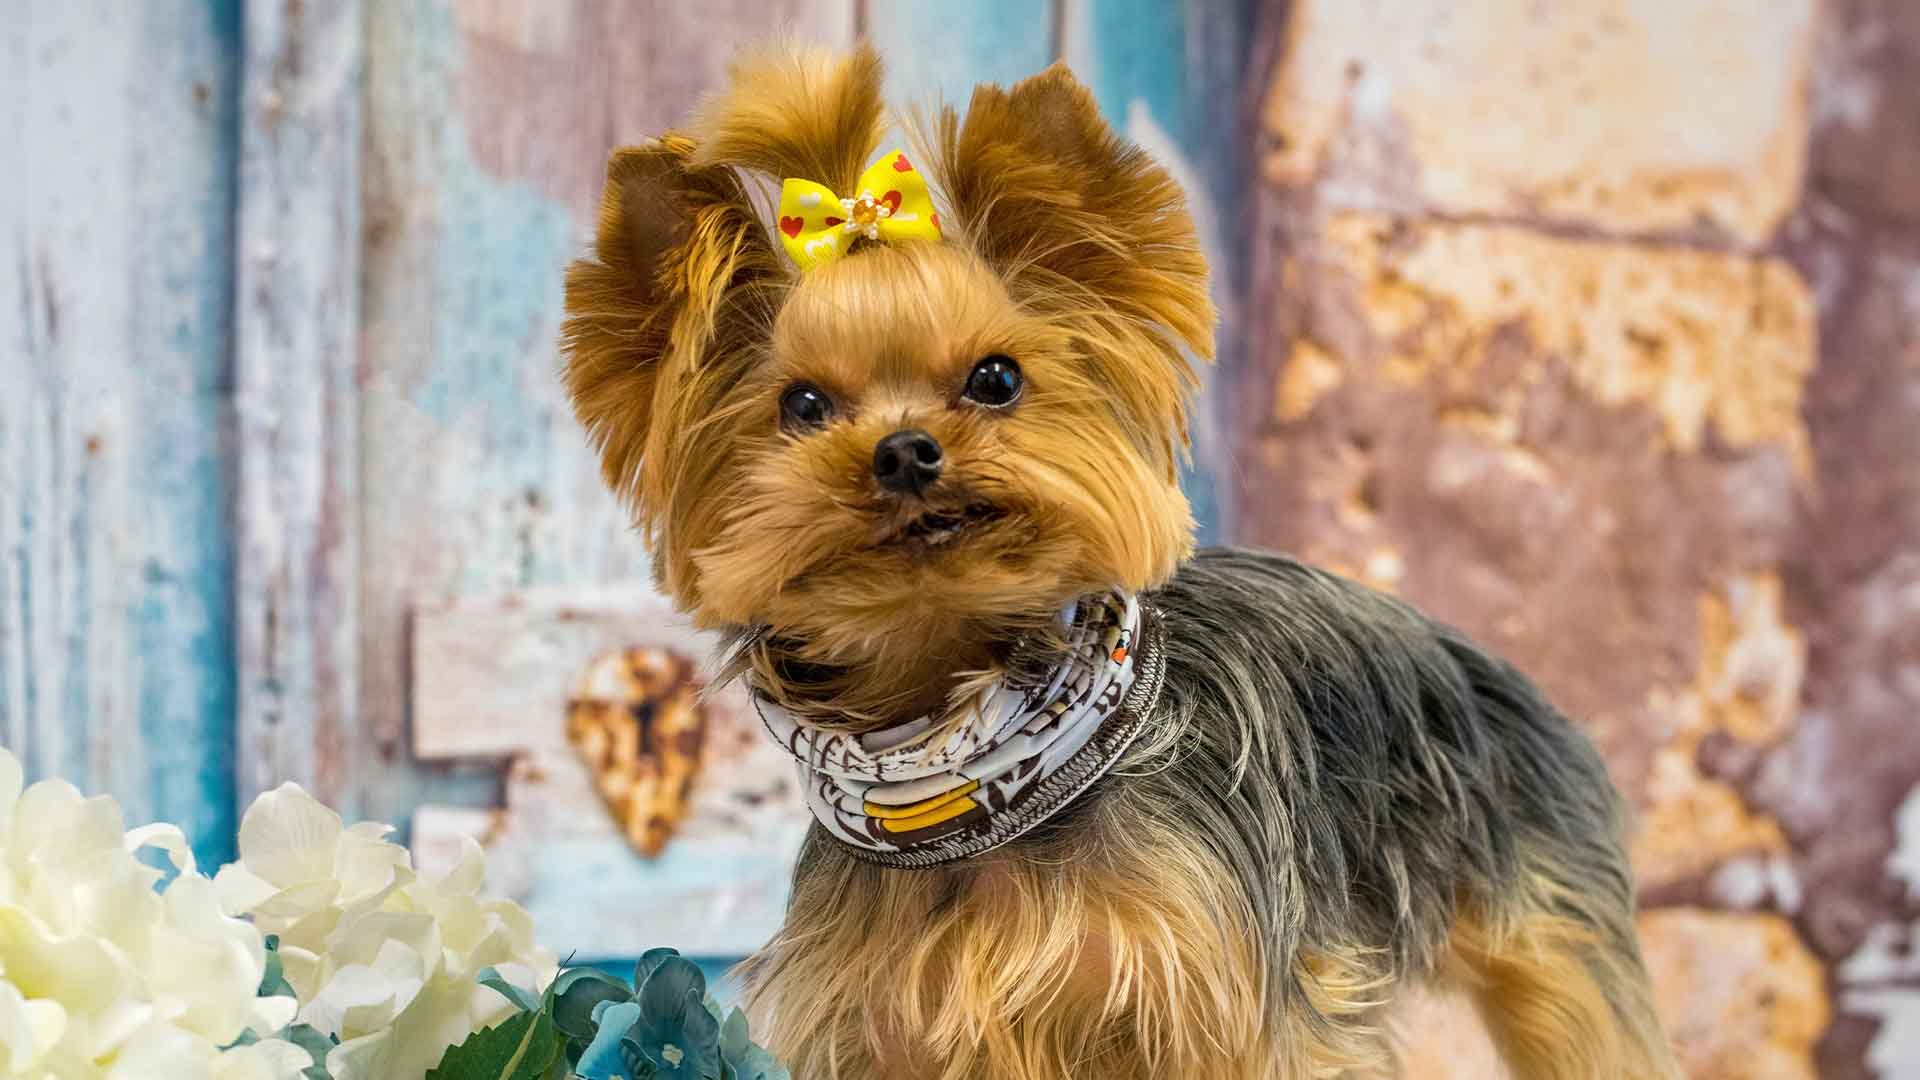 Best Dog Foods For Small Dogs 2021: Reviews & Buyer's Guide